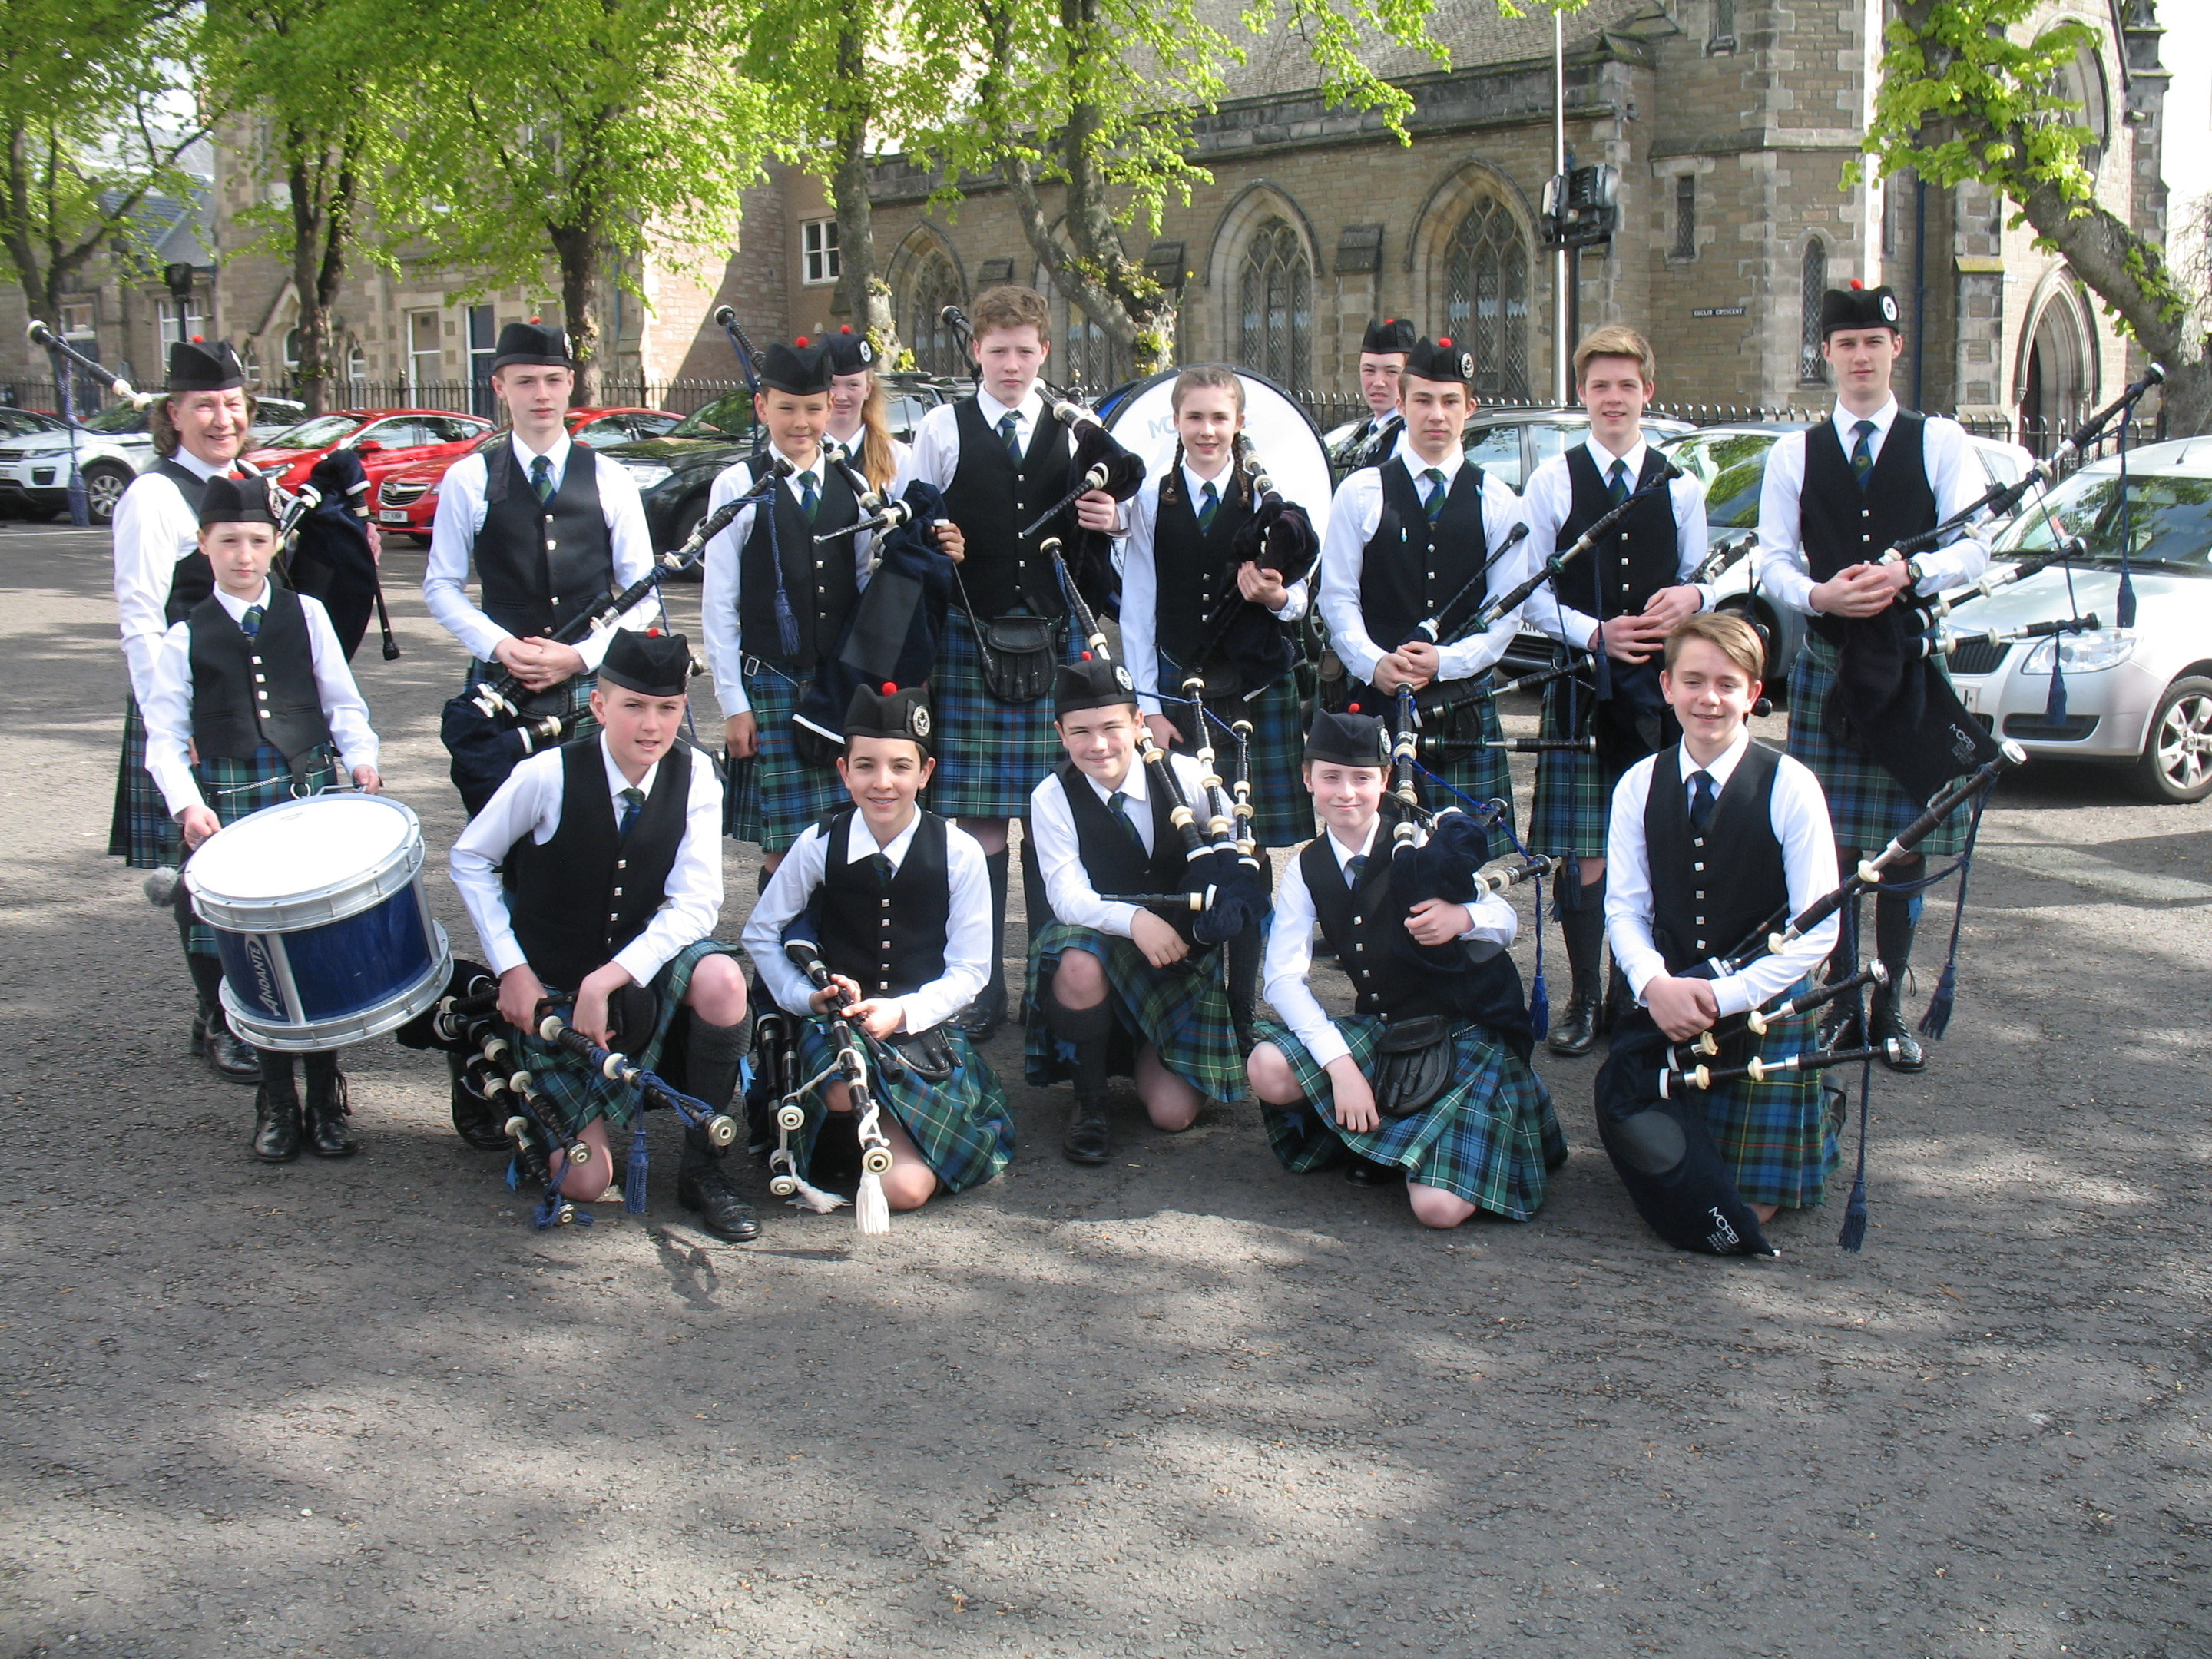 Members of the Dundee-based McKenzie Caledonian pipe band in Dundee on Sunday.